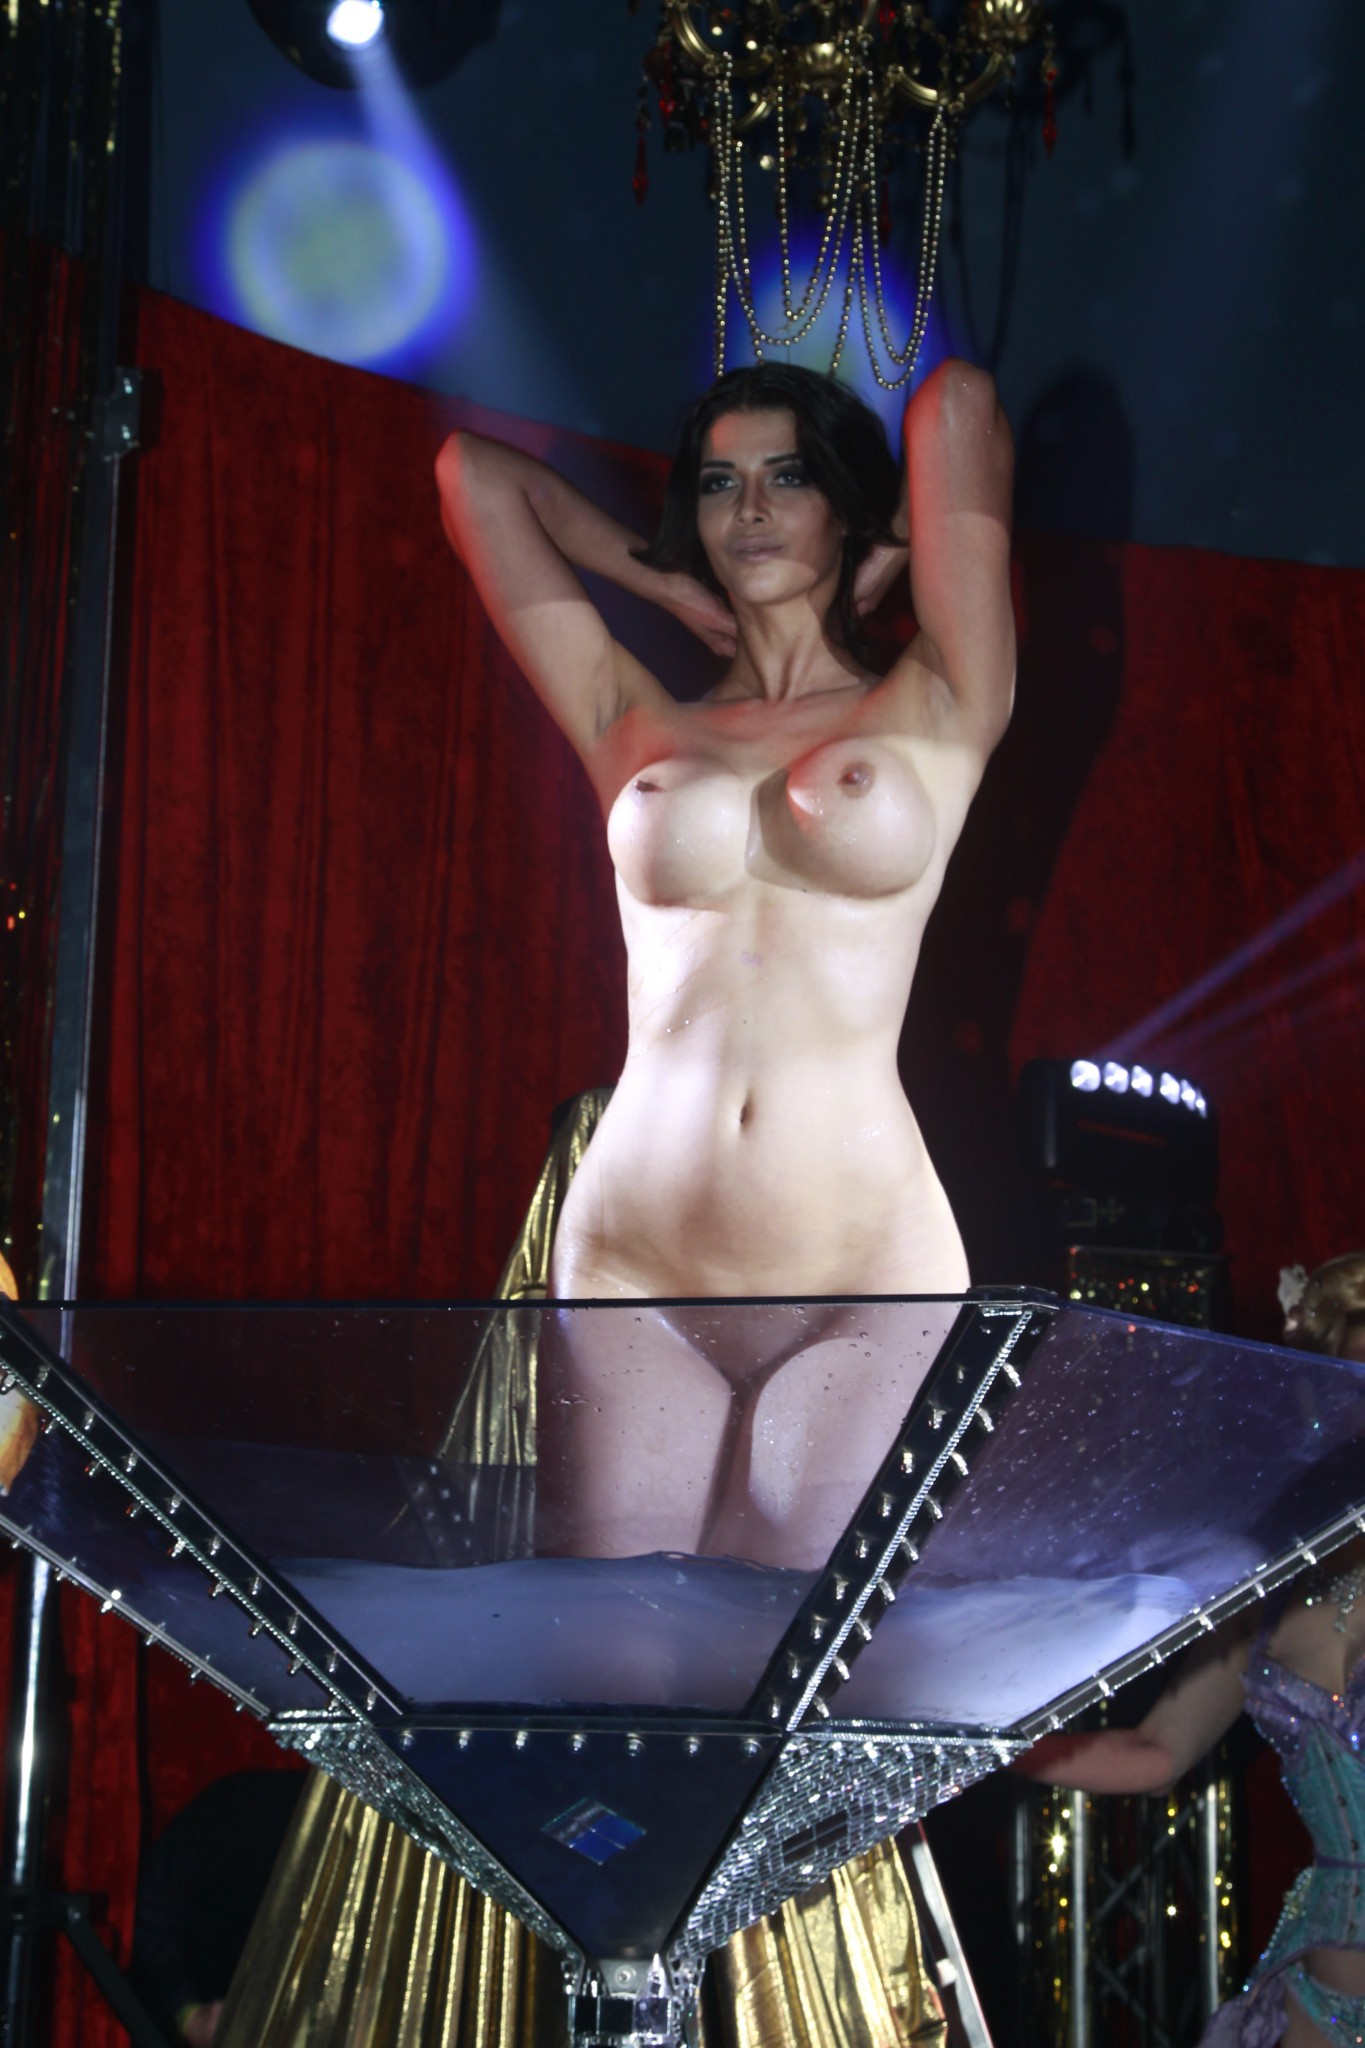 micaela-schafer-naked-at-audi-night-party-11